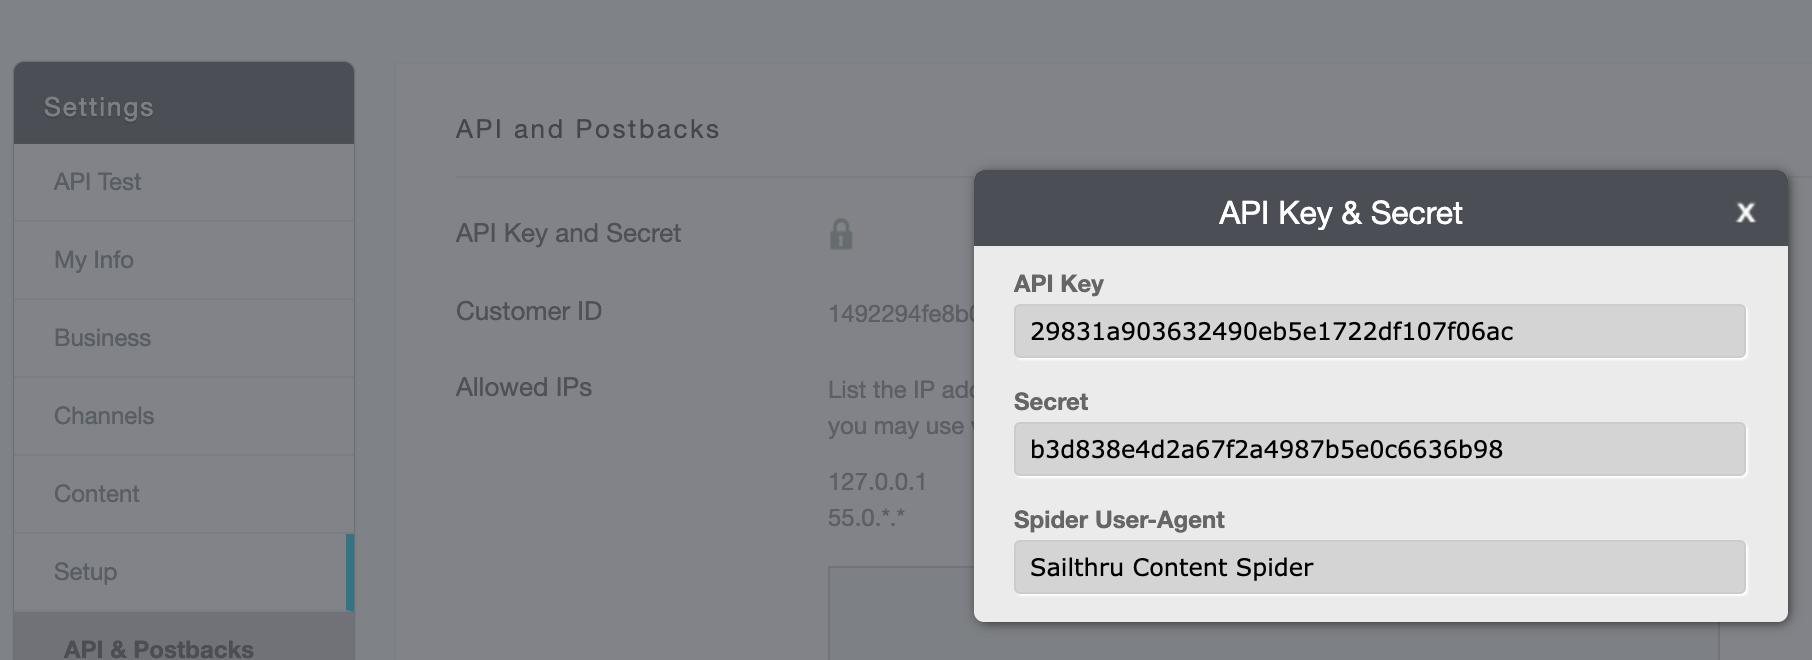 Getting your API Key and Secret